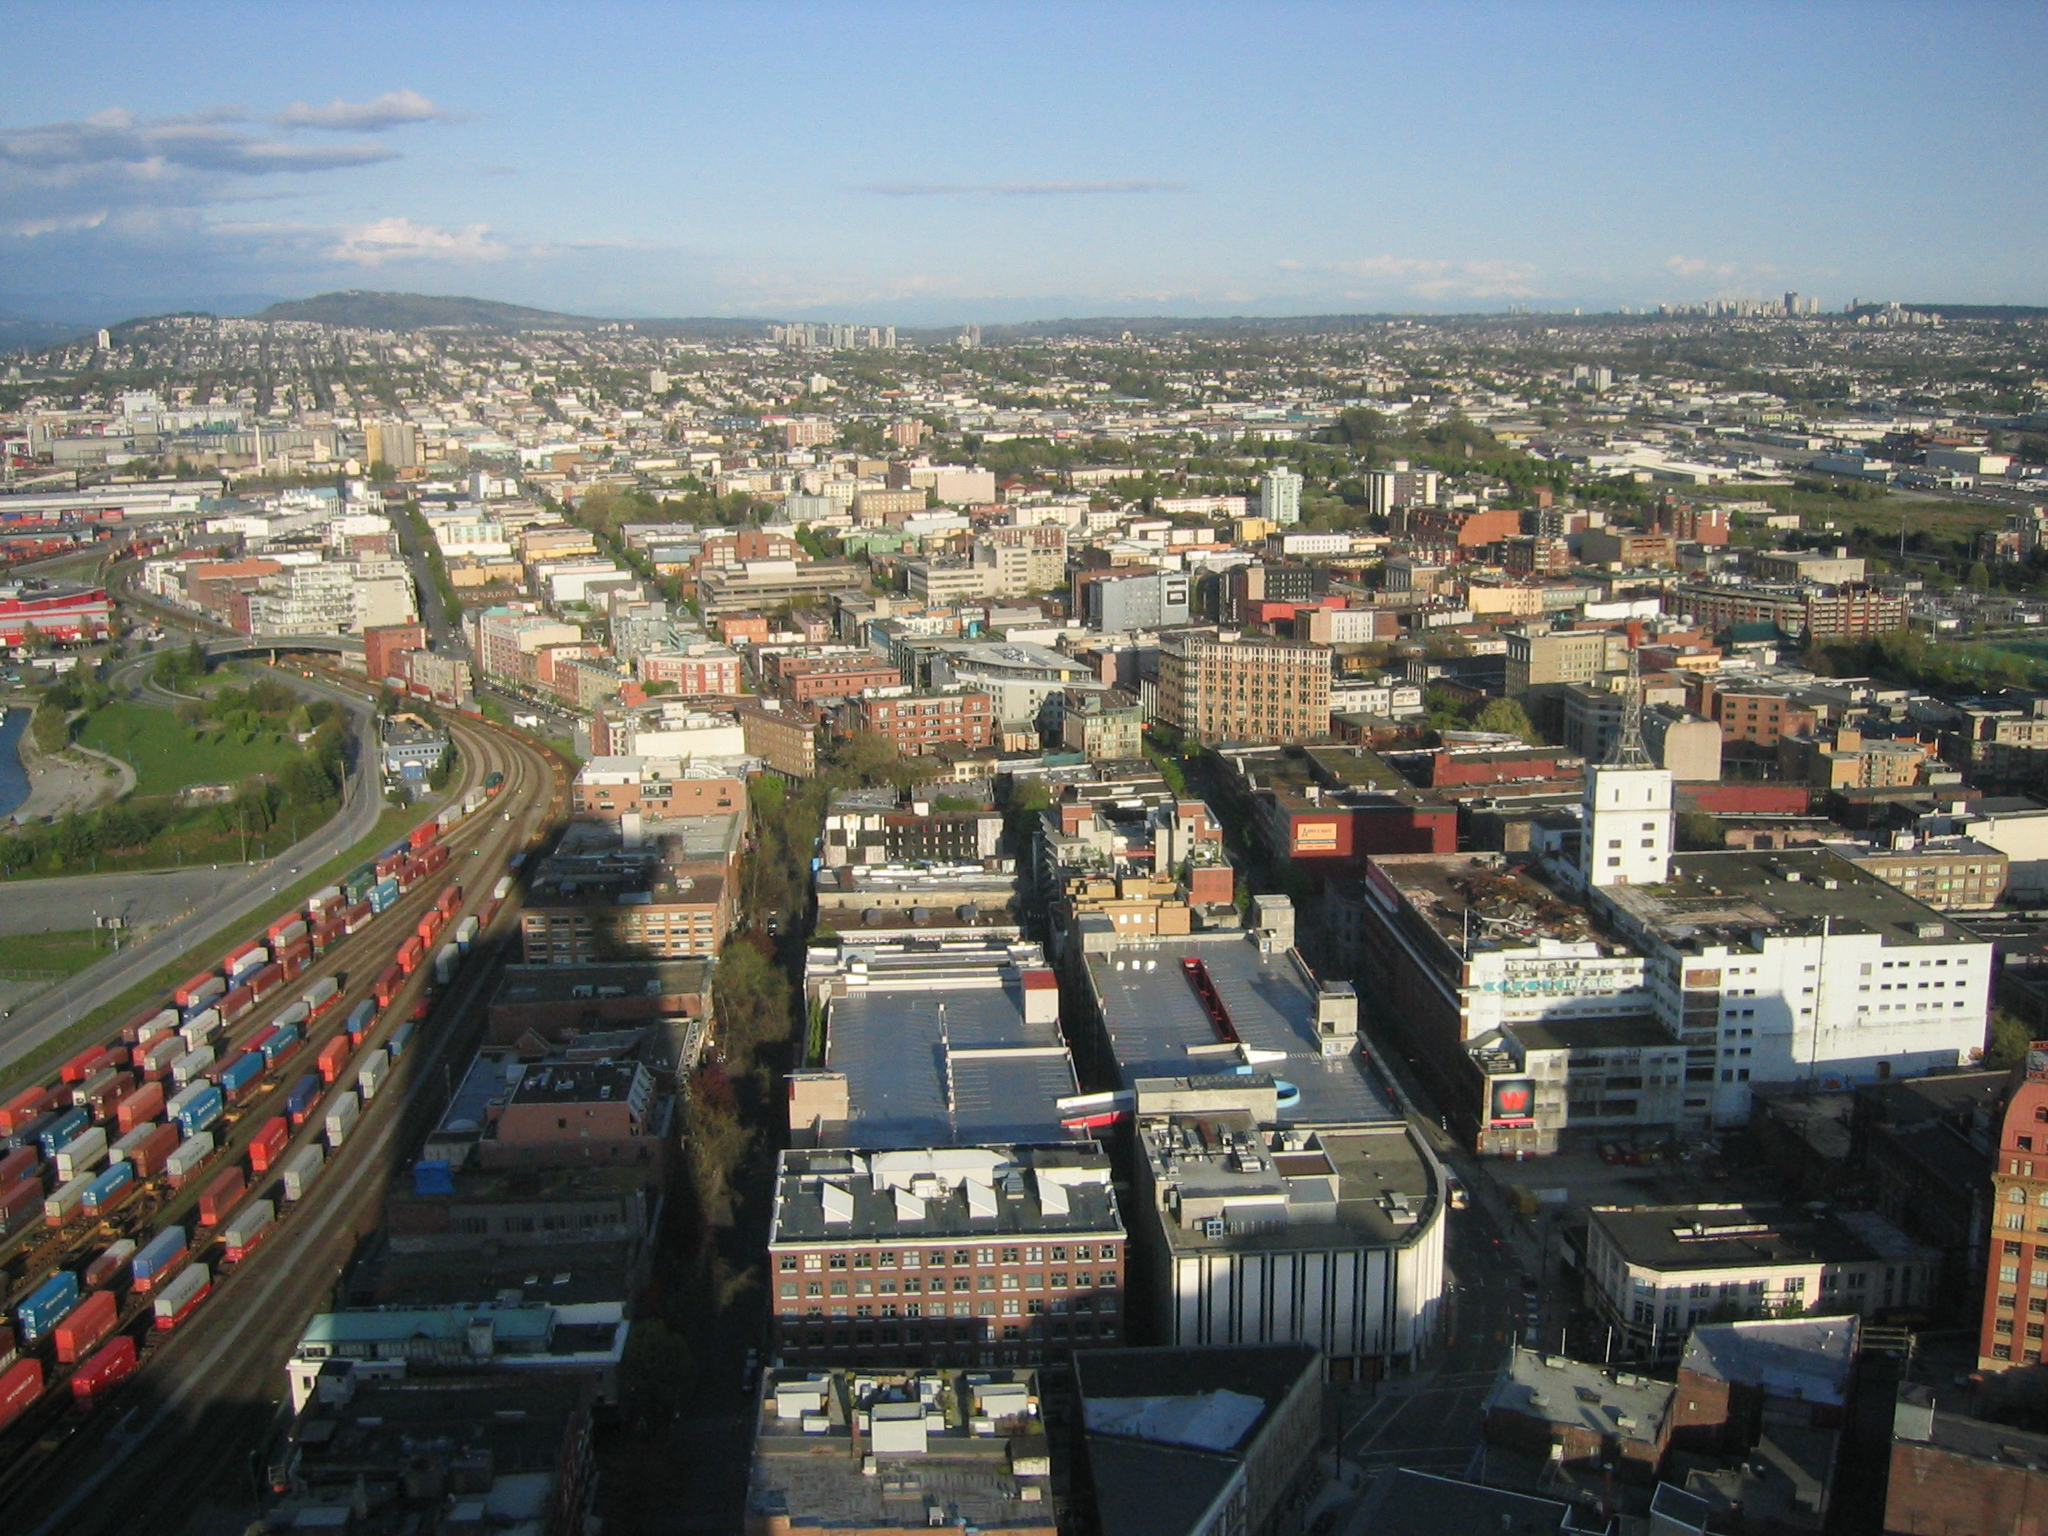 Aerial view of Gastown